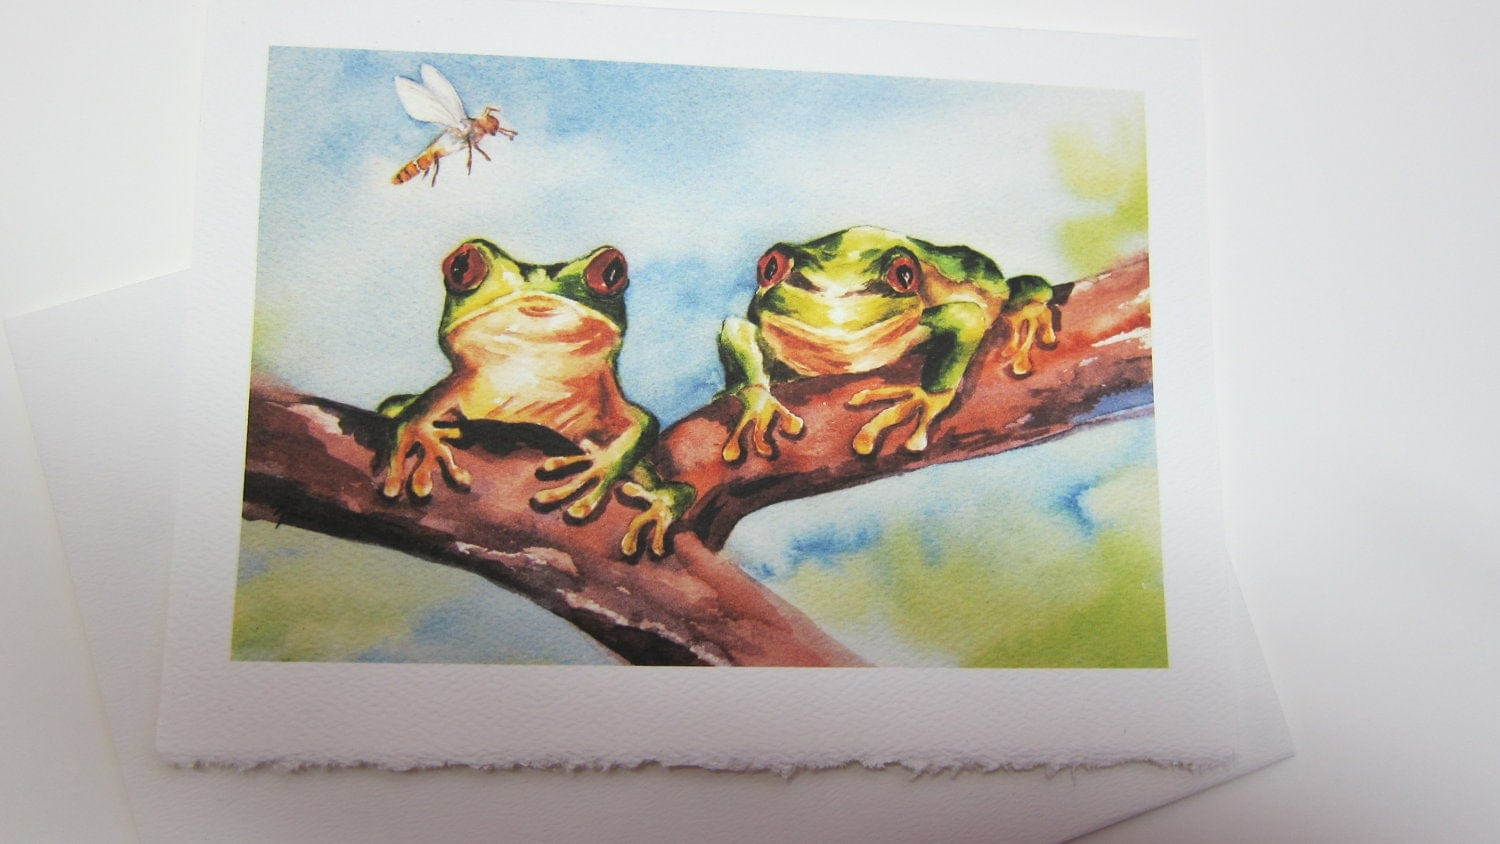 https://www.etsy.com/listing/56026105/frog-print-red-eye-tree-frog-note-card-5?ref=tre-2724573252-10